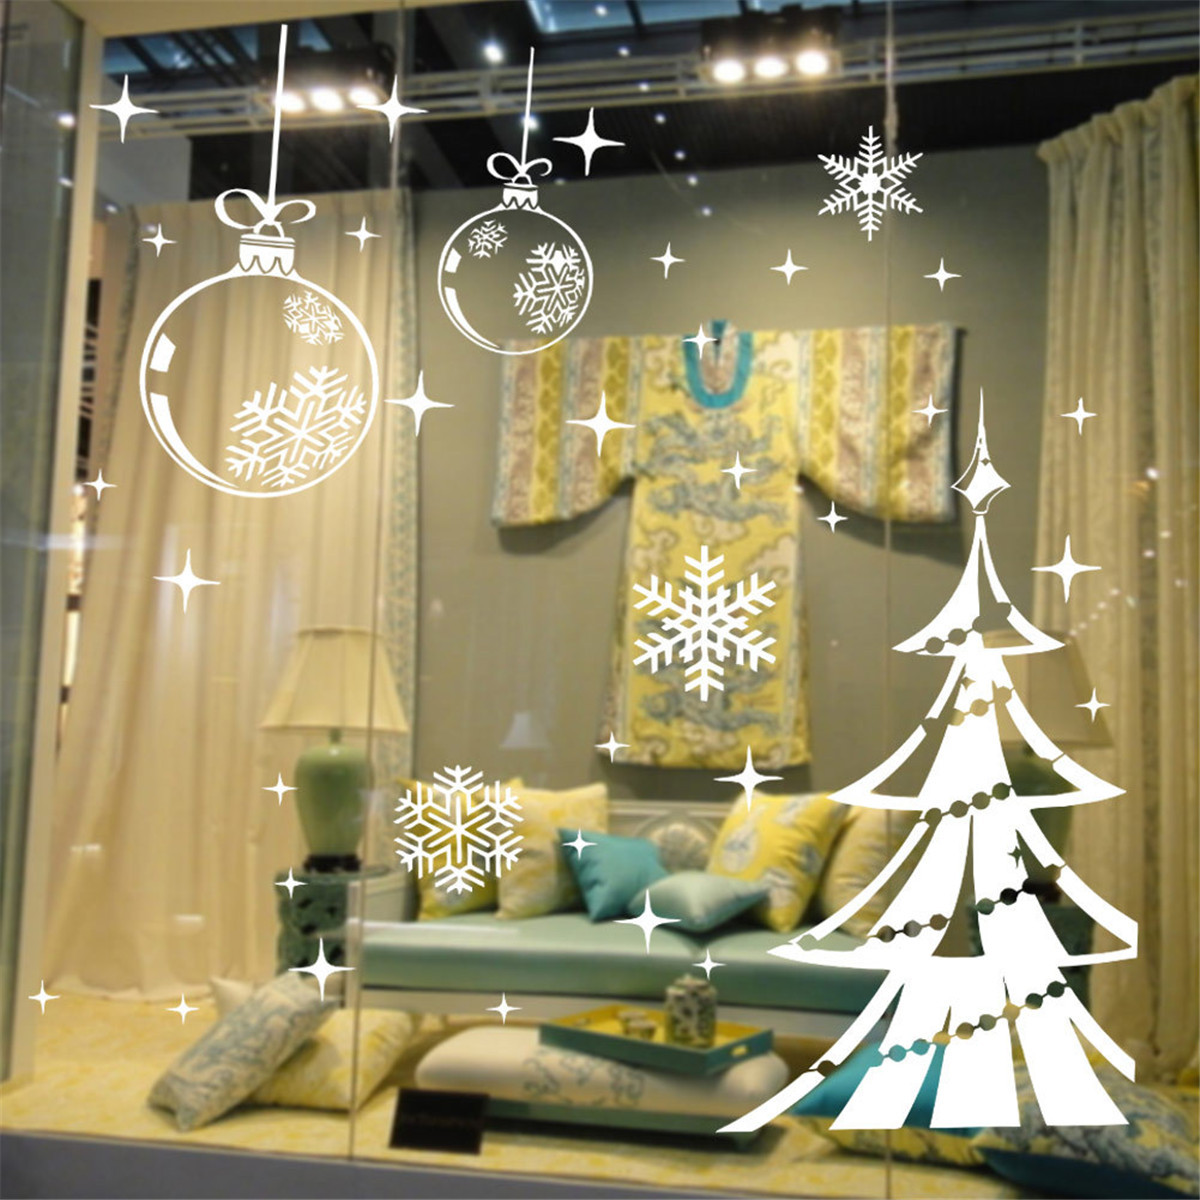 Deco Noel Vitrine Magasin Decoration De Noel Pour Vitrine De Magasin